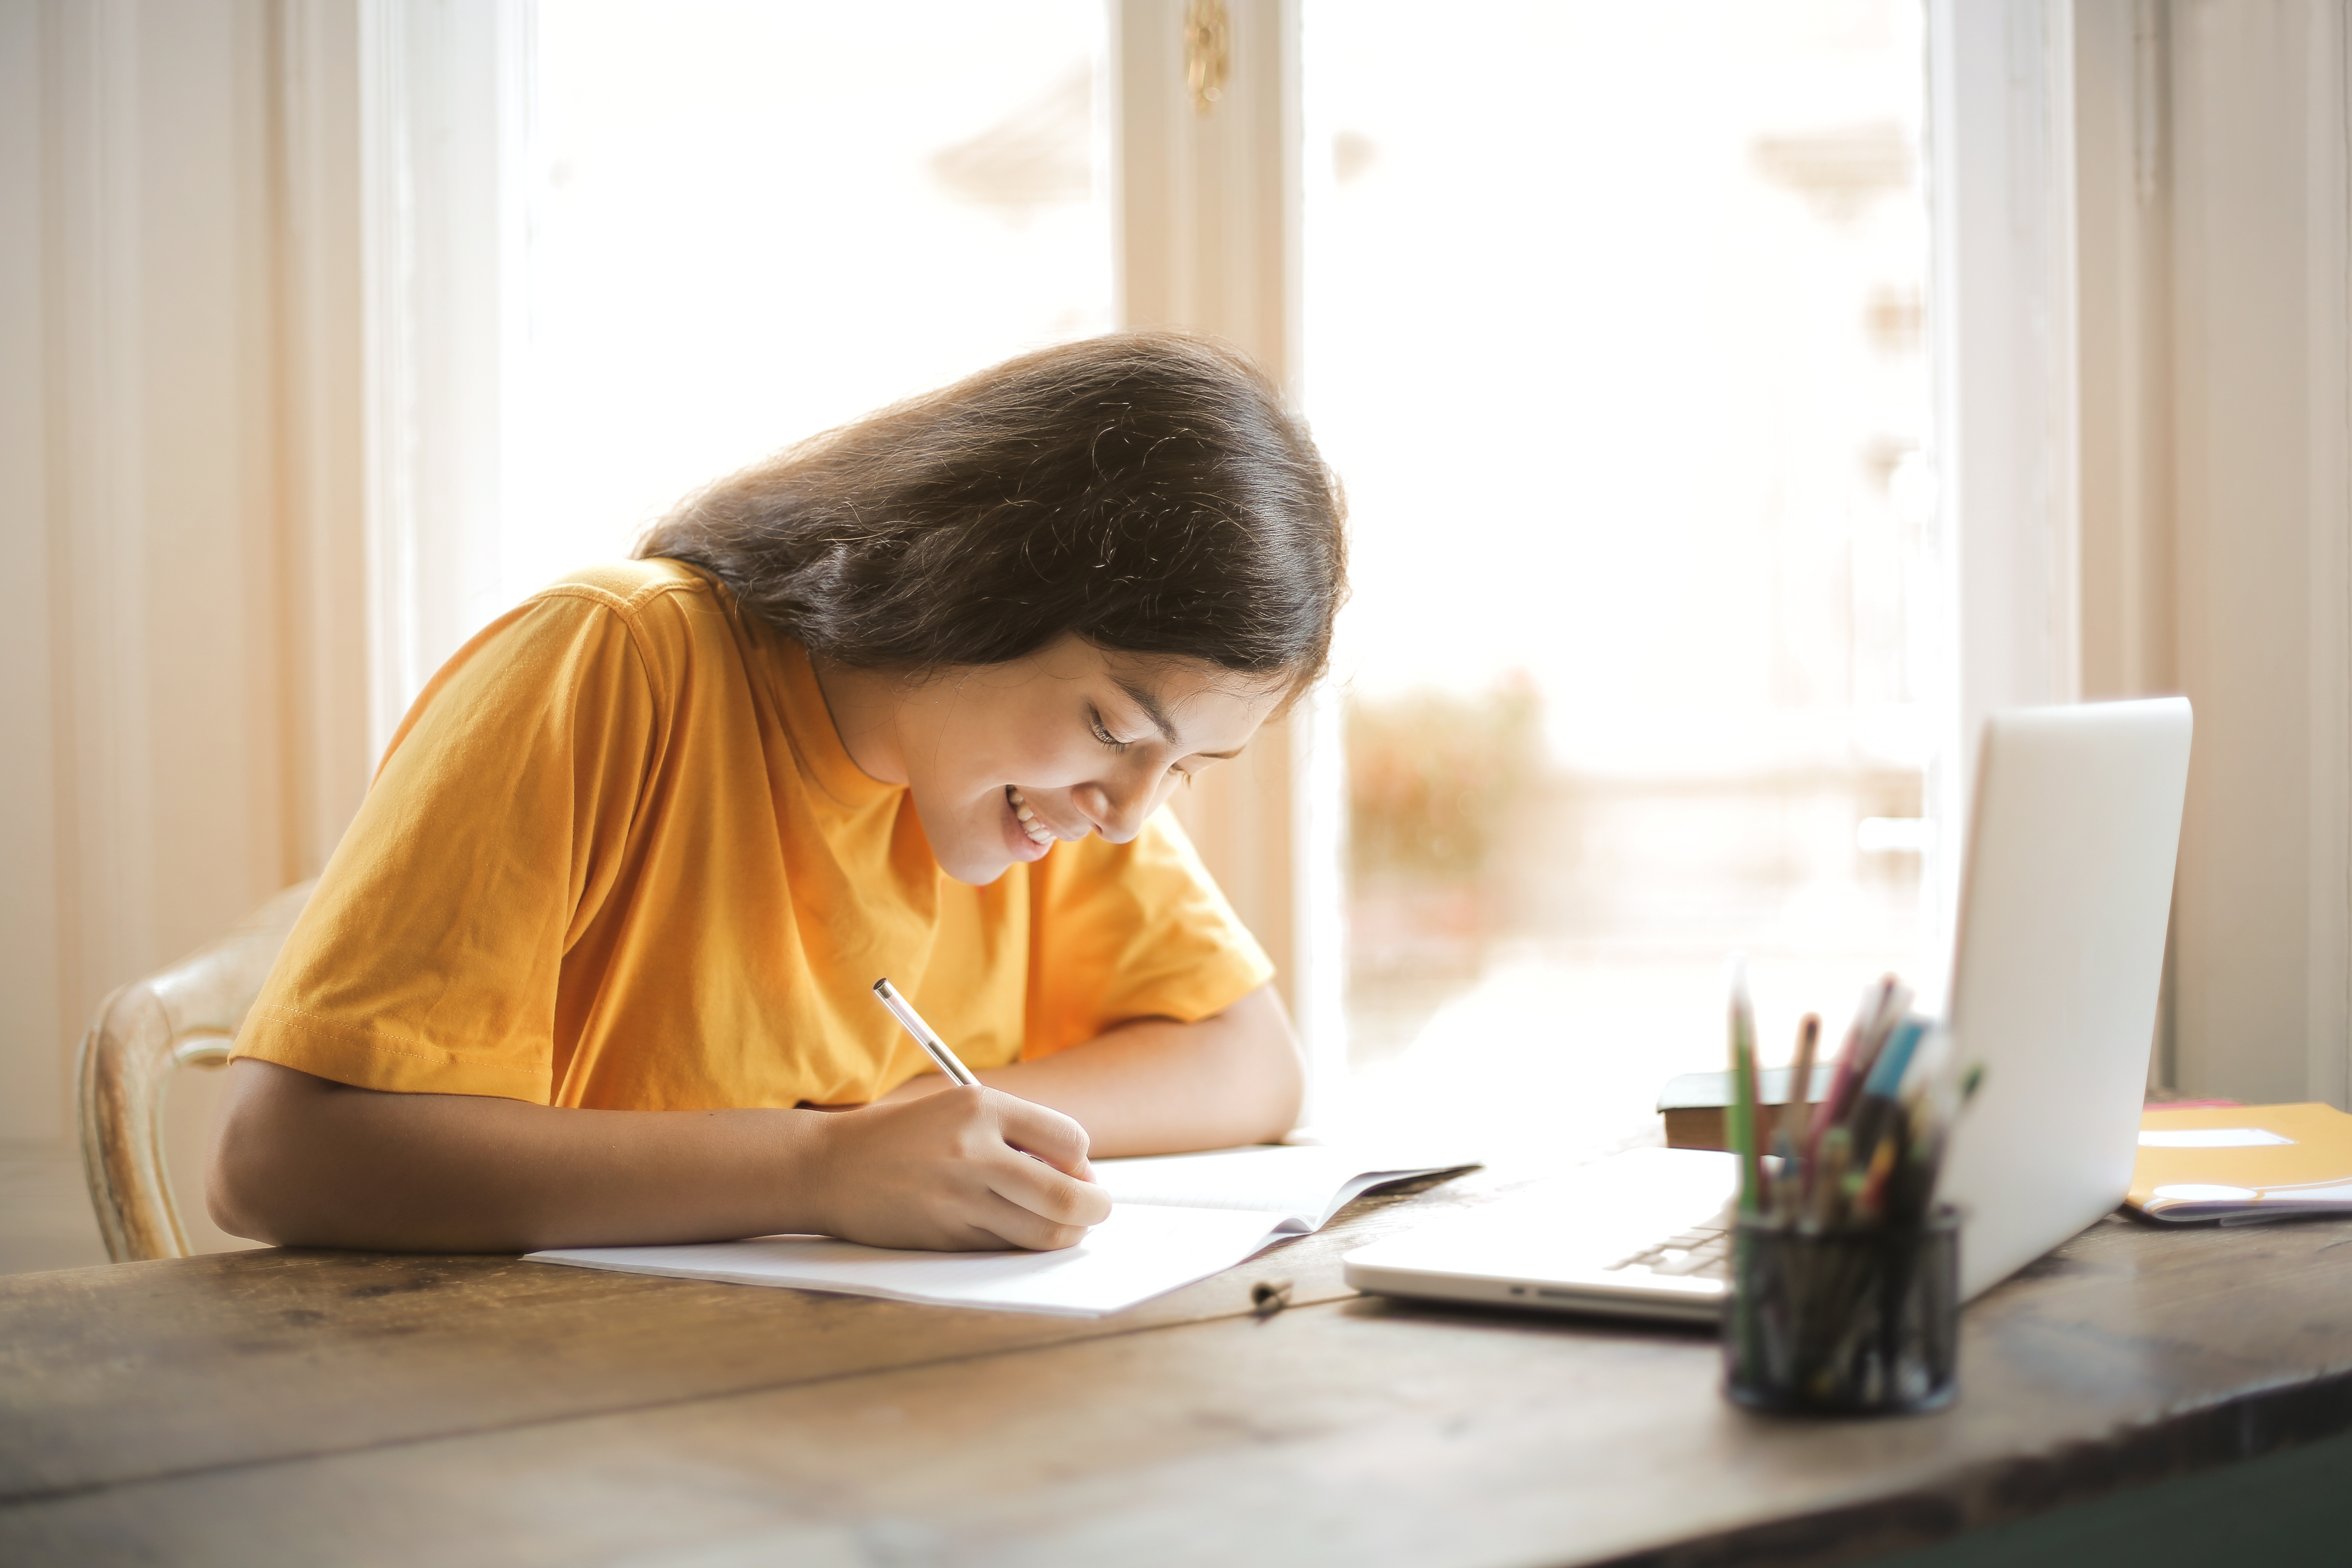 girl learning online at home on laptop and writing notes